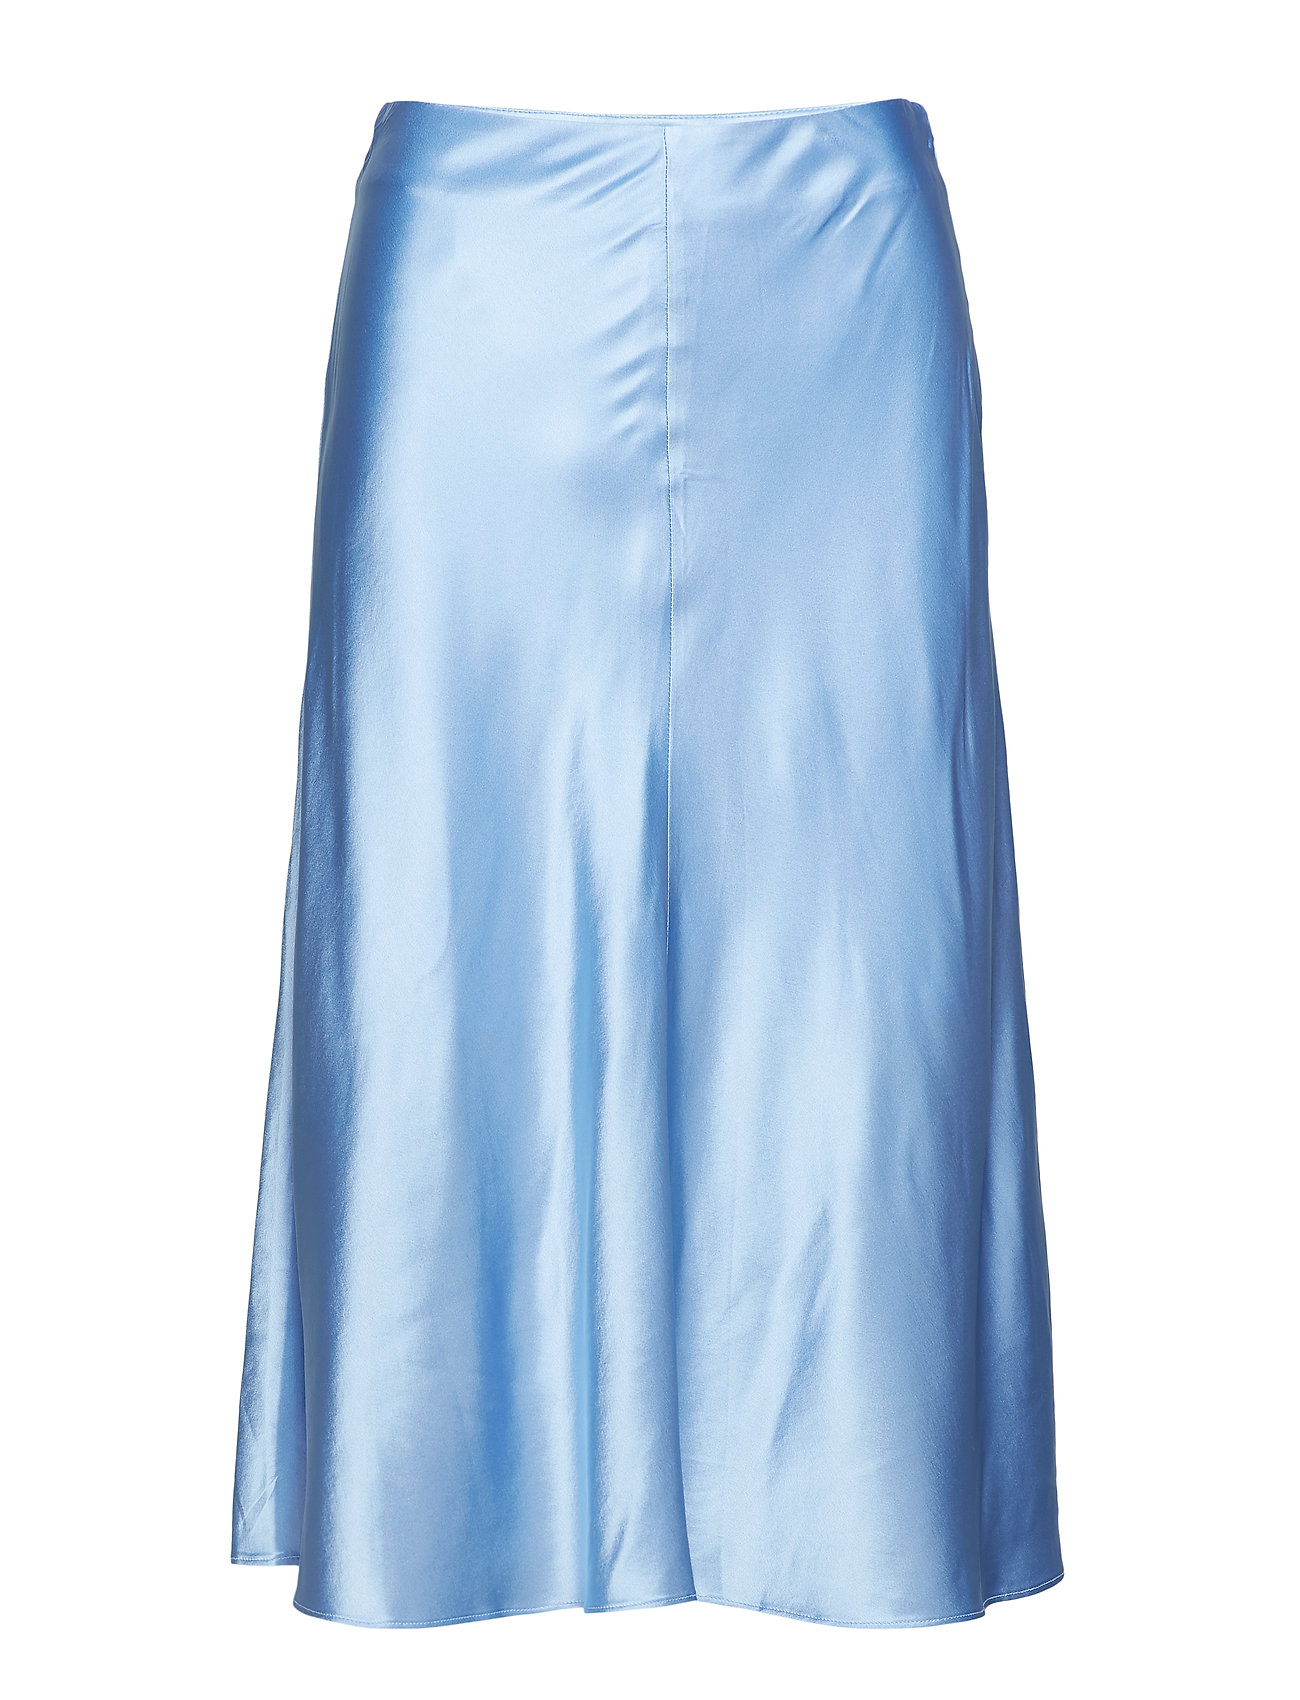 Samsøe & Samsøe Heaston skirt 9697 - BEL AIR BLUE